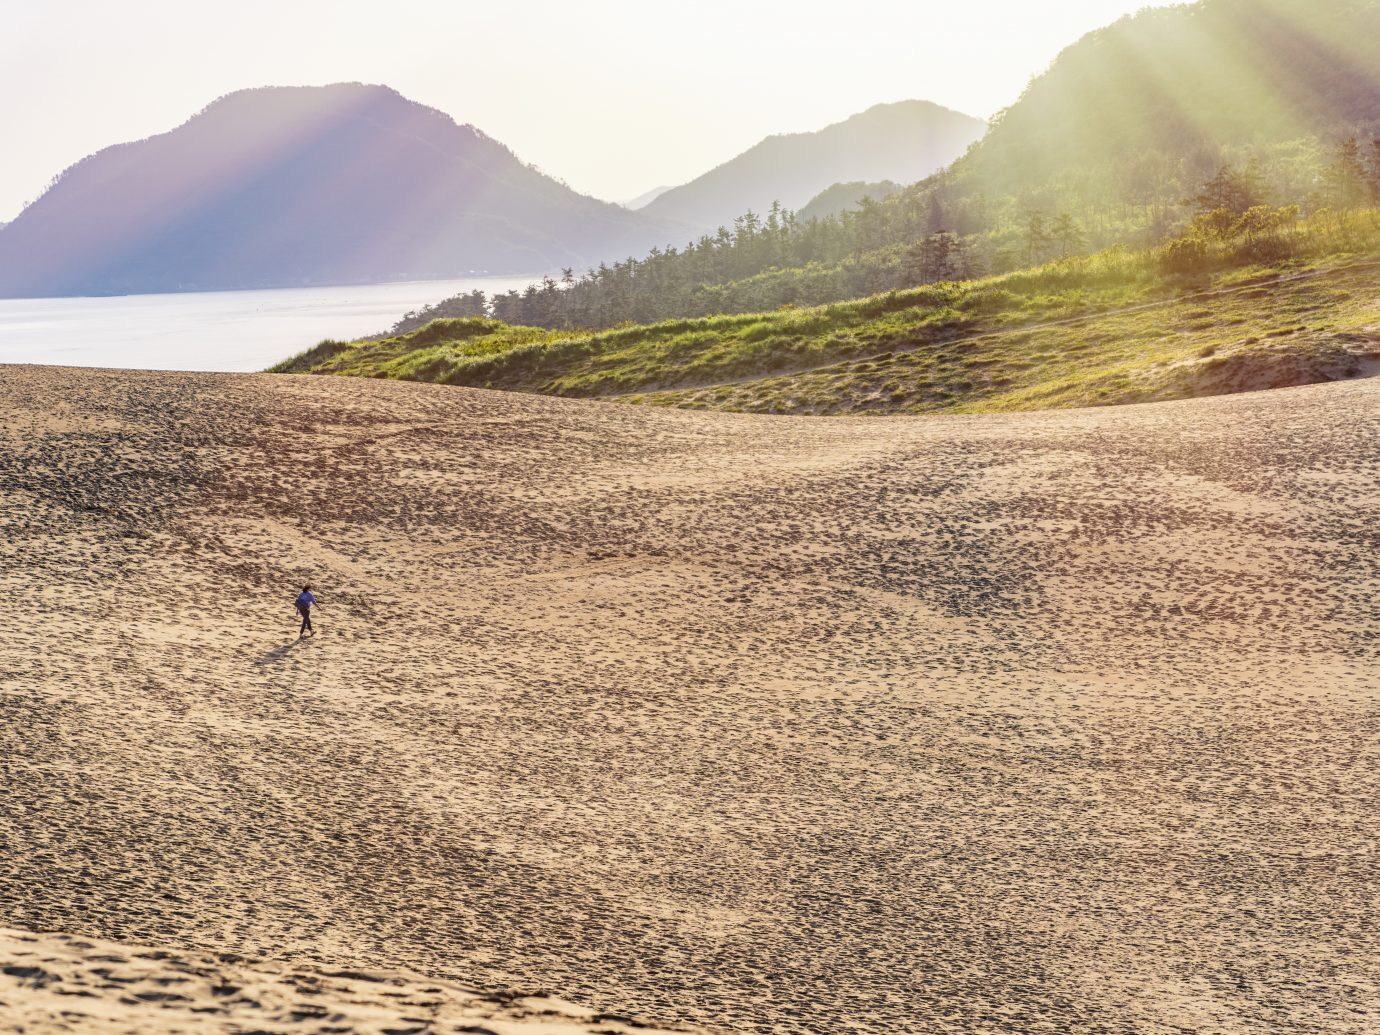 A woman enjoys traveling in a sand dune in Tottori prefecture